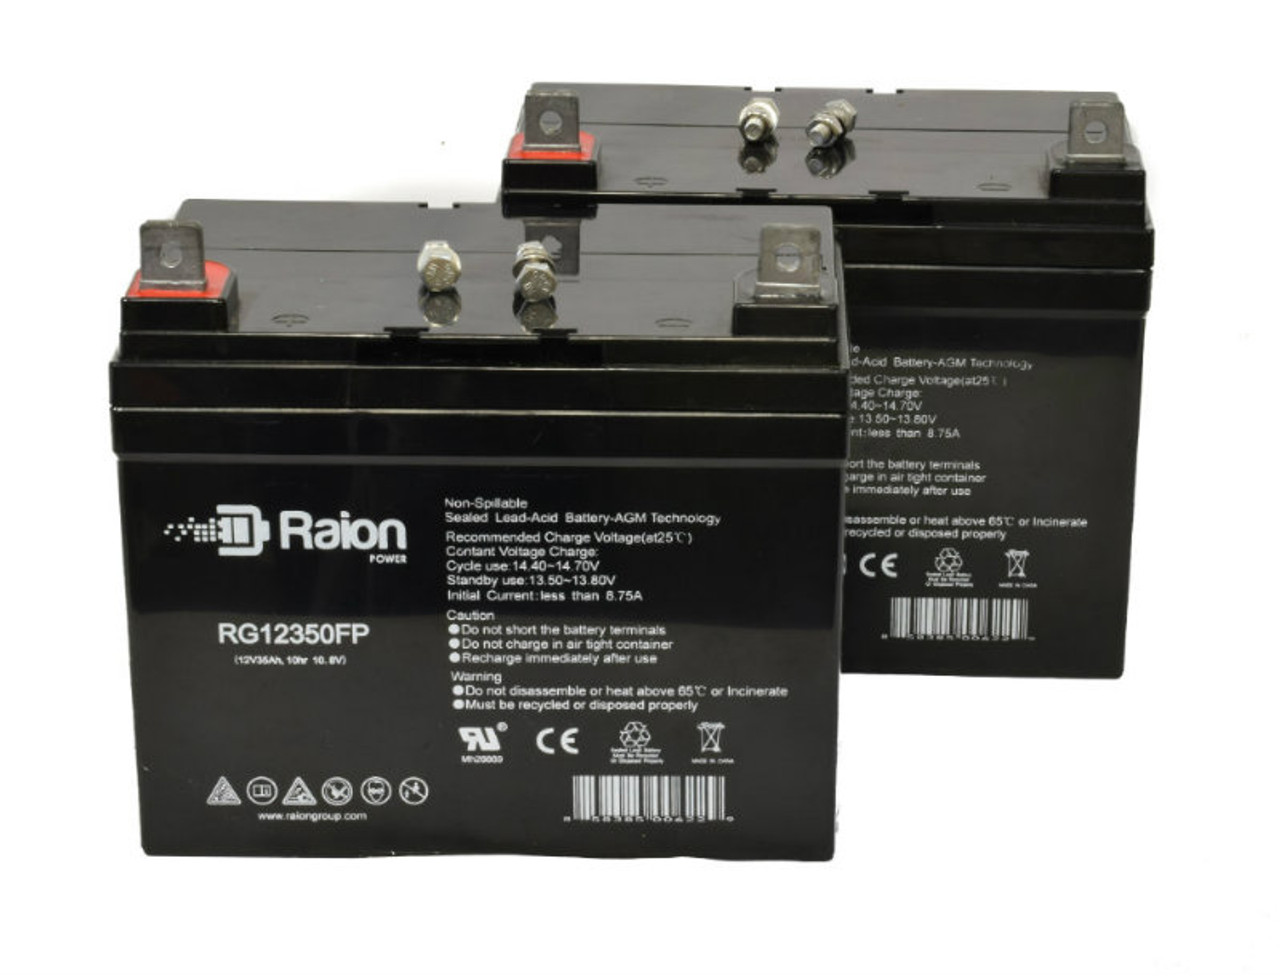 Raion Power RG12350FP Replacement Wheelchair Battery For Chauffeur Mobility Viva Powerchair GP24 (2 Pack)